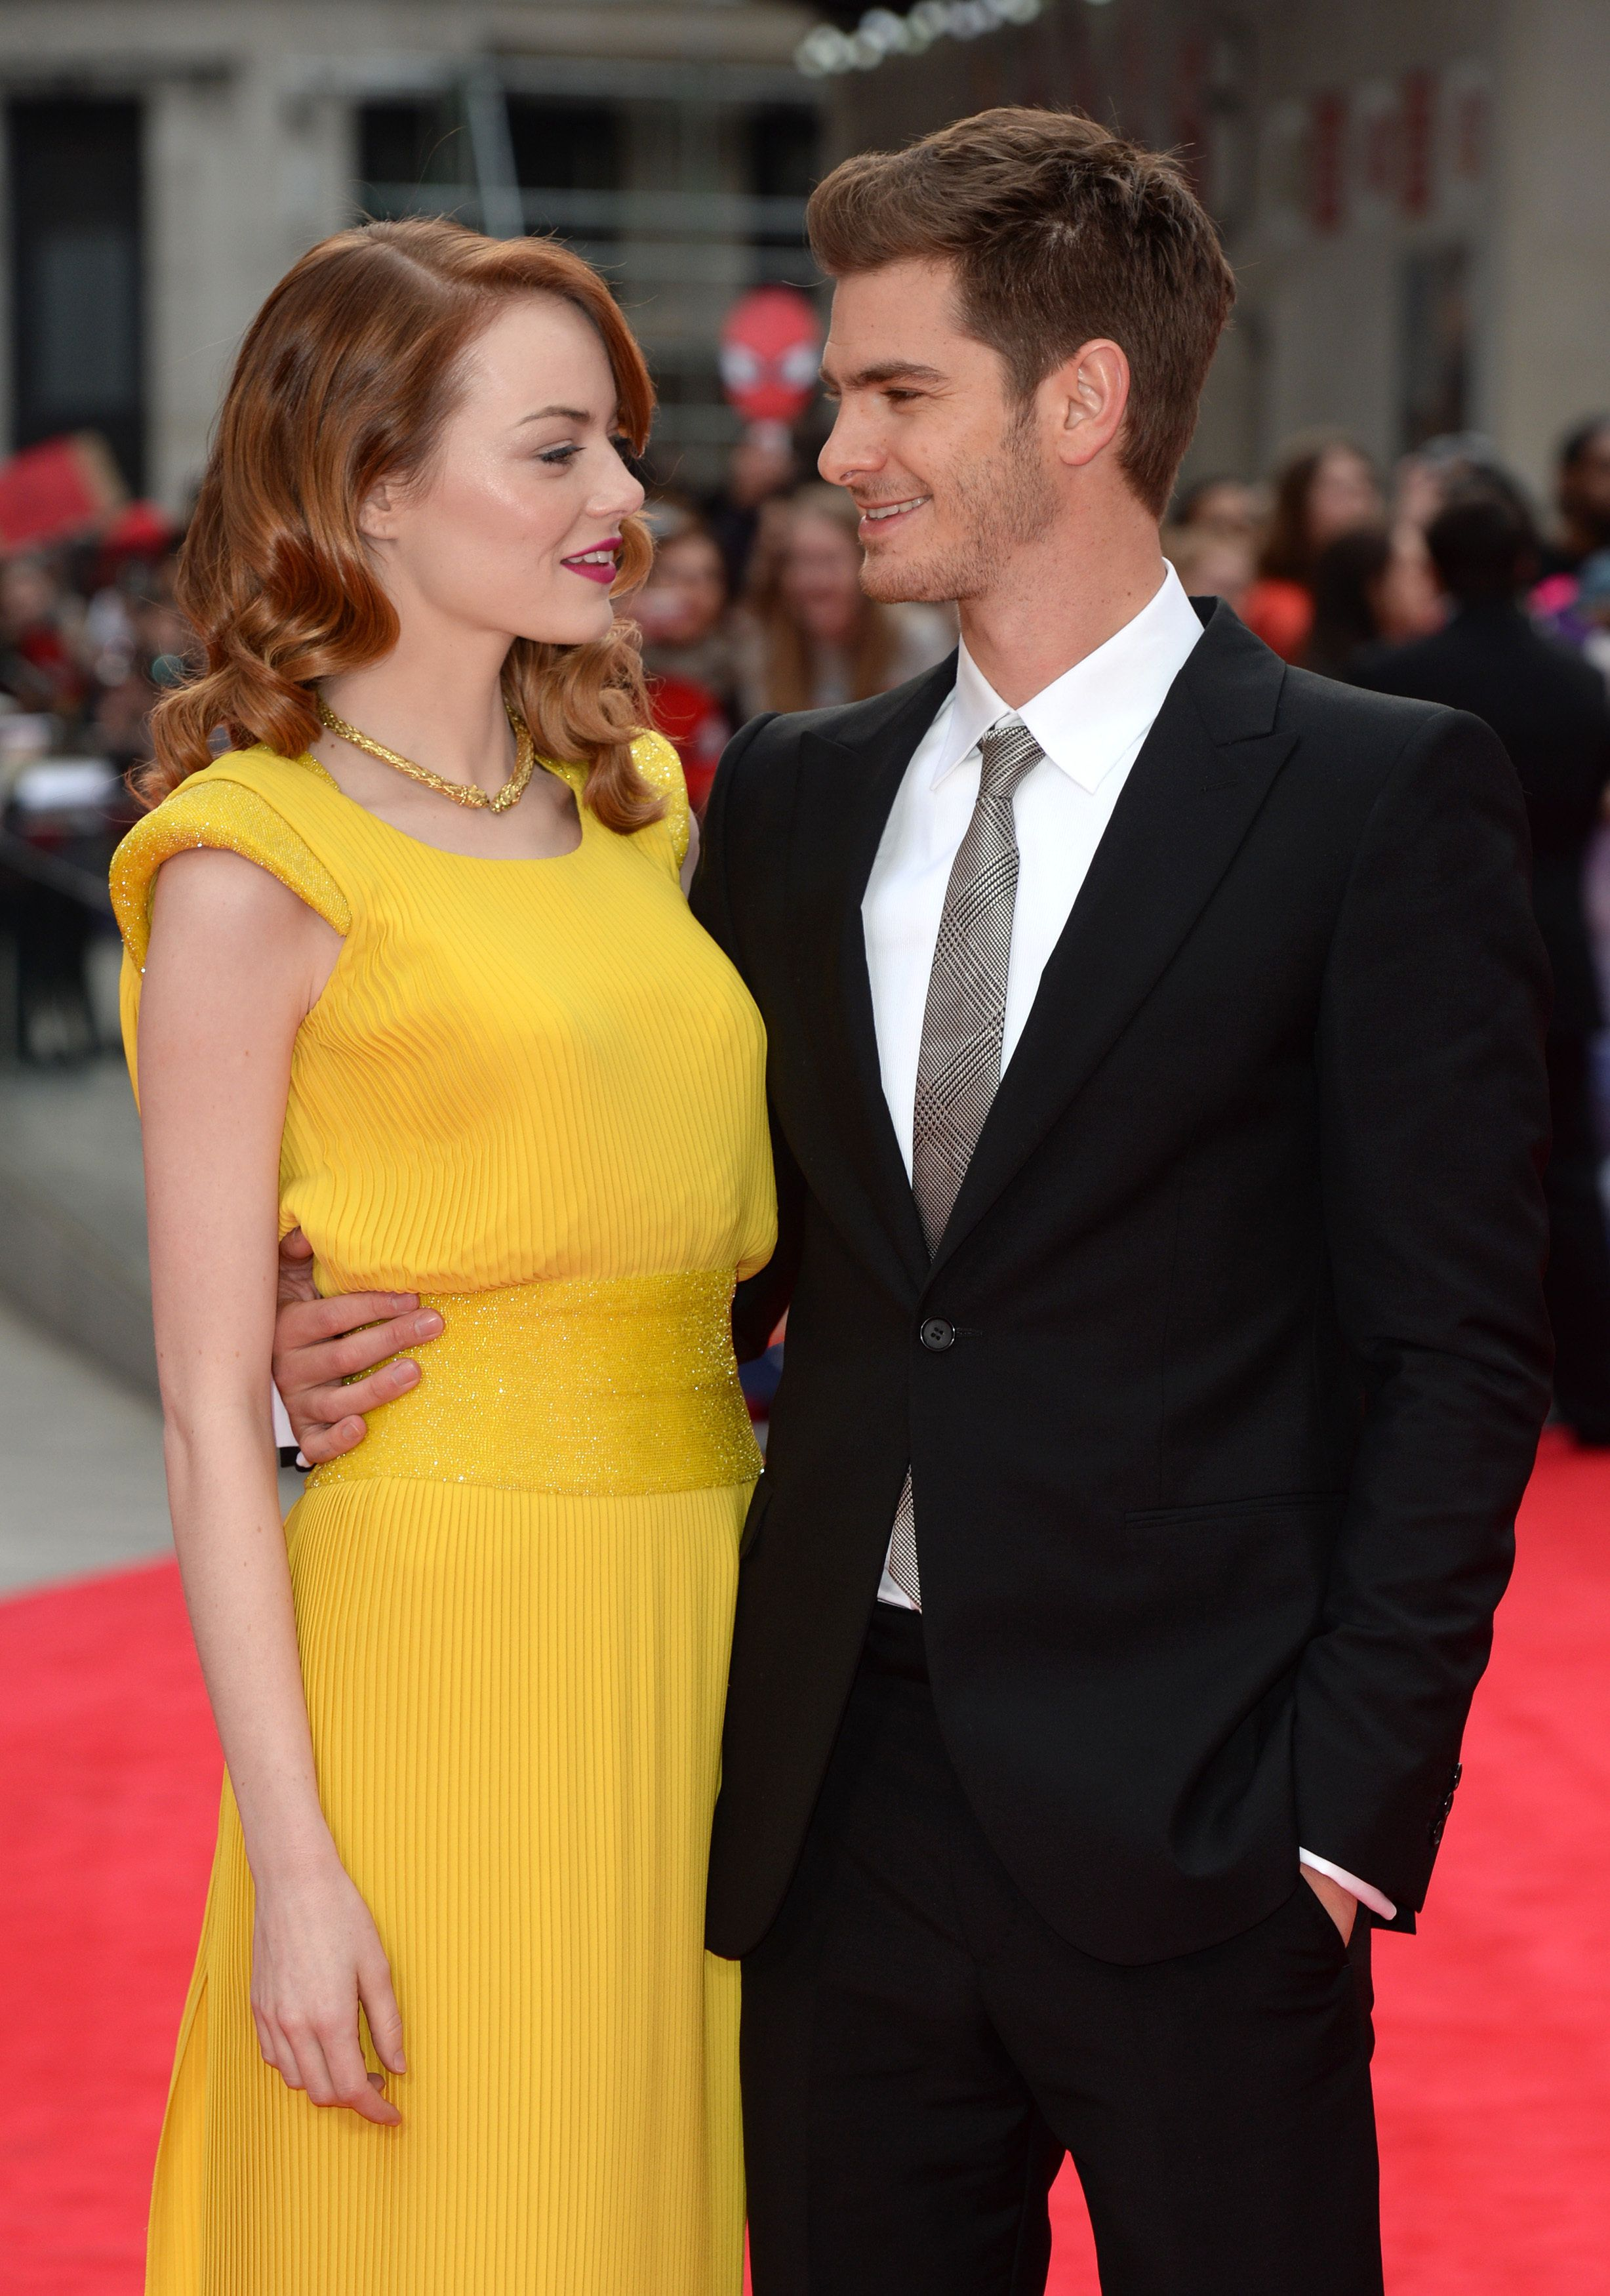 Emma Stone And Andrew Garfield 'Growing Close' Once